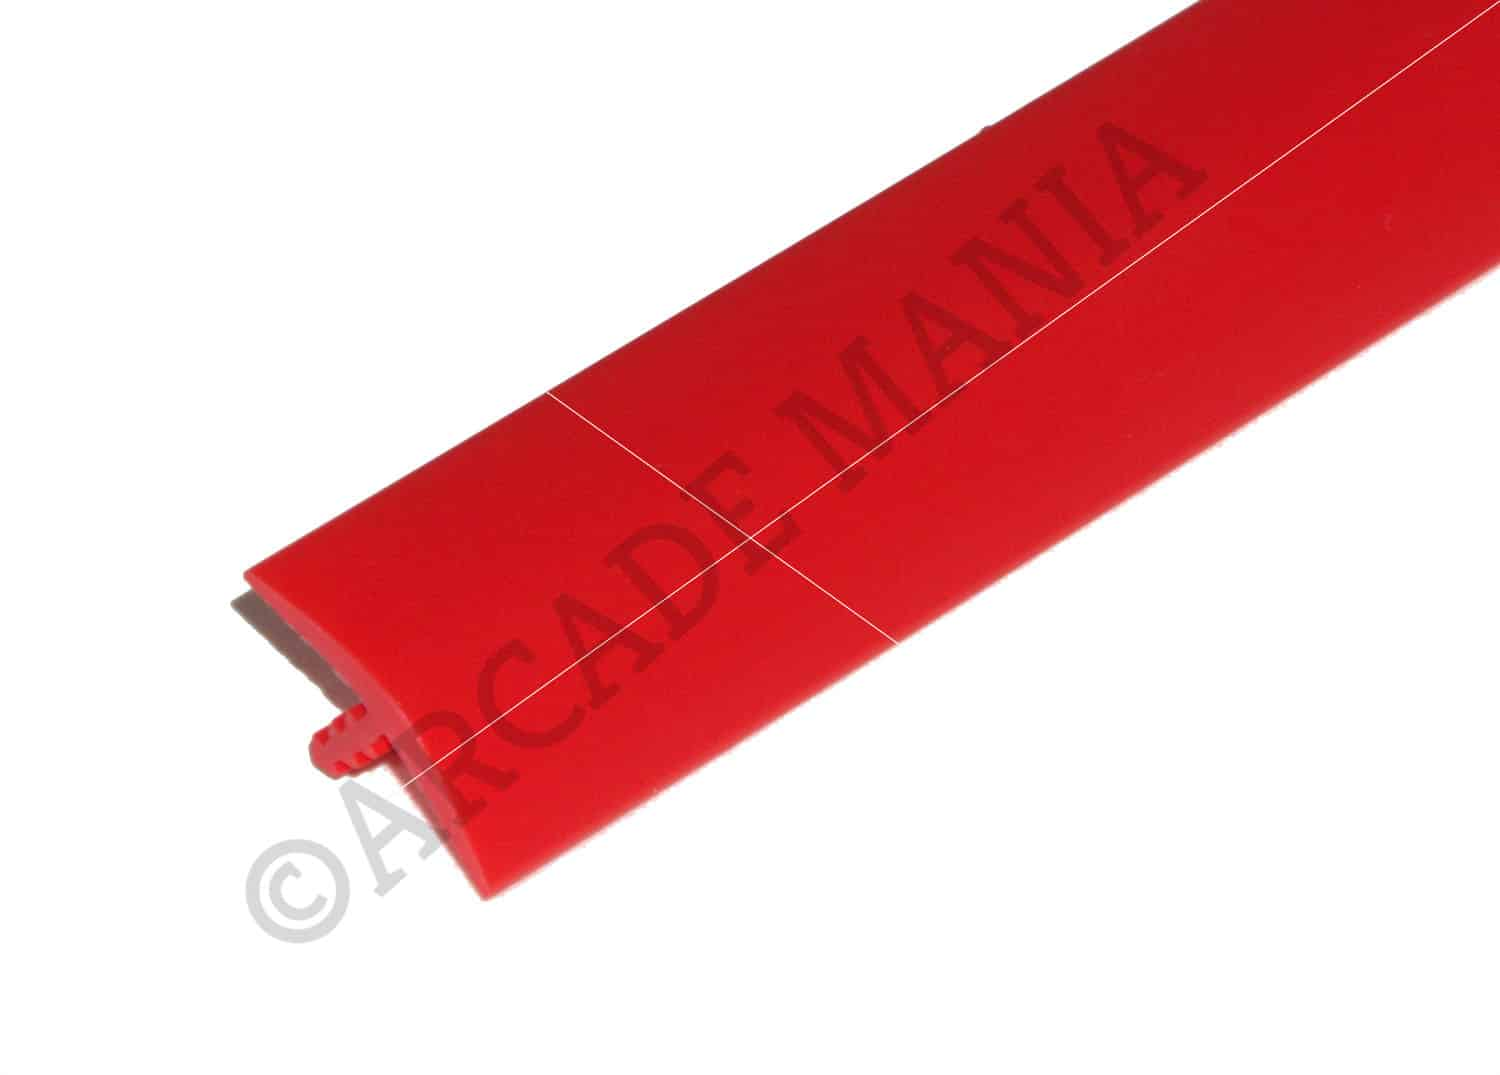 Red 3 Quarter Inch T-Molding 19.5mm Trim Image